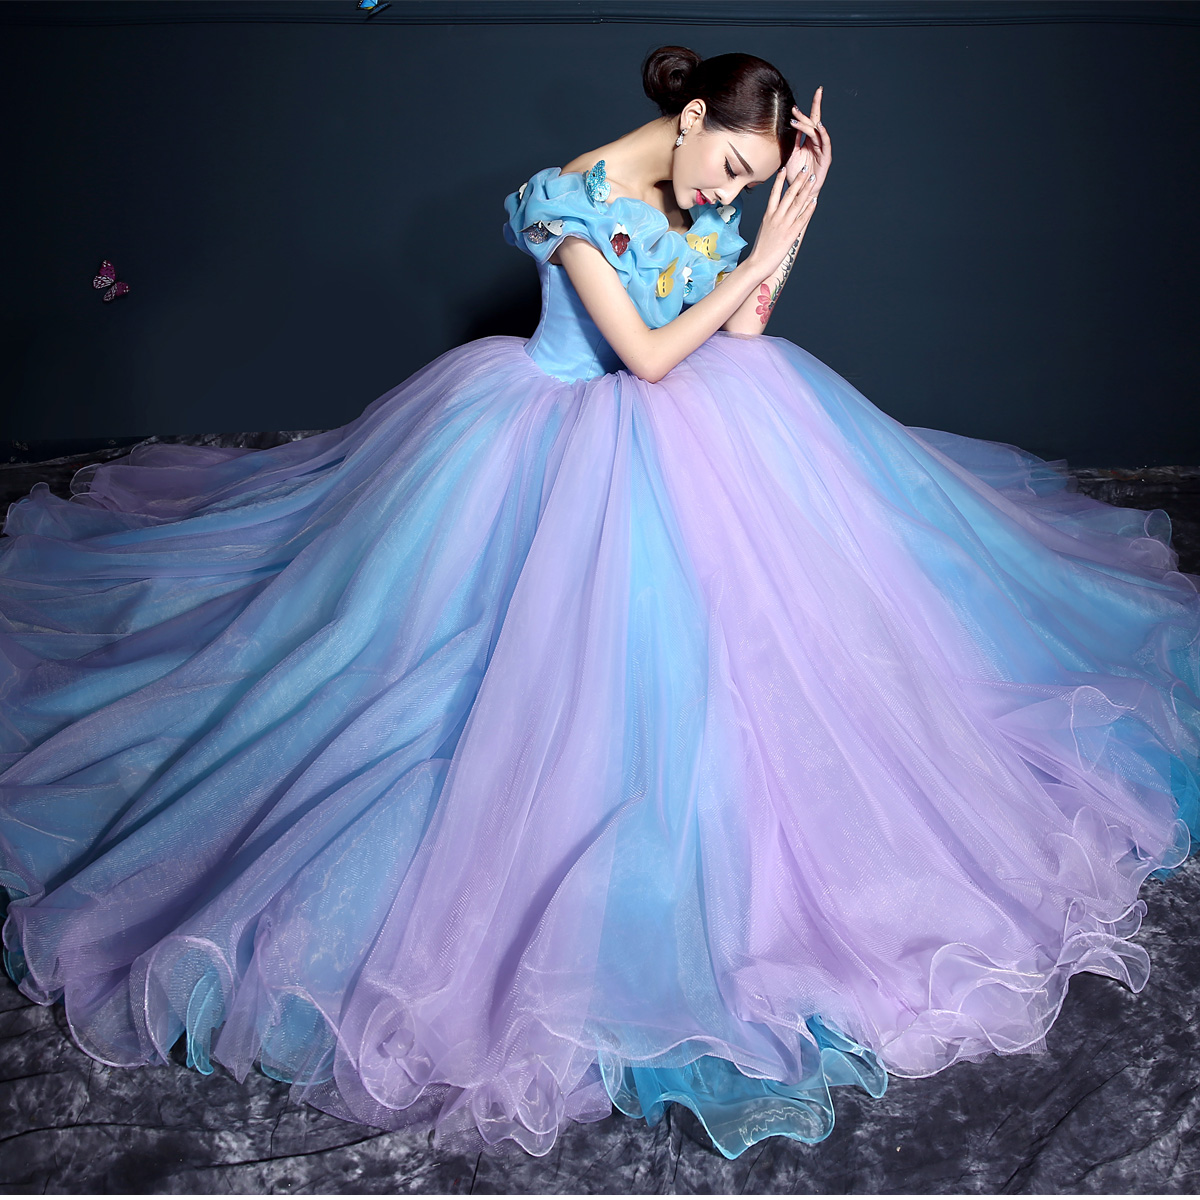 Elegant Fashion Fast Delivery Princess   Prom     Dresses   2019 Applique Long Ball Gown Puffy   Prom     Dress   Tulle Evening Costume Gowns